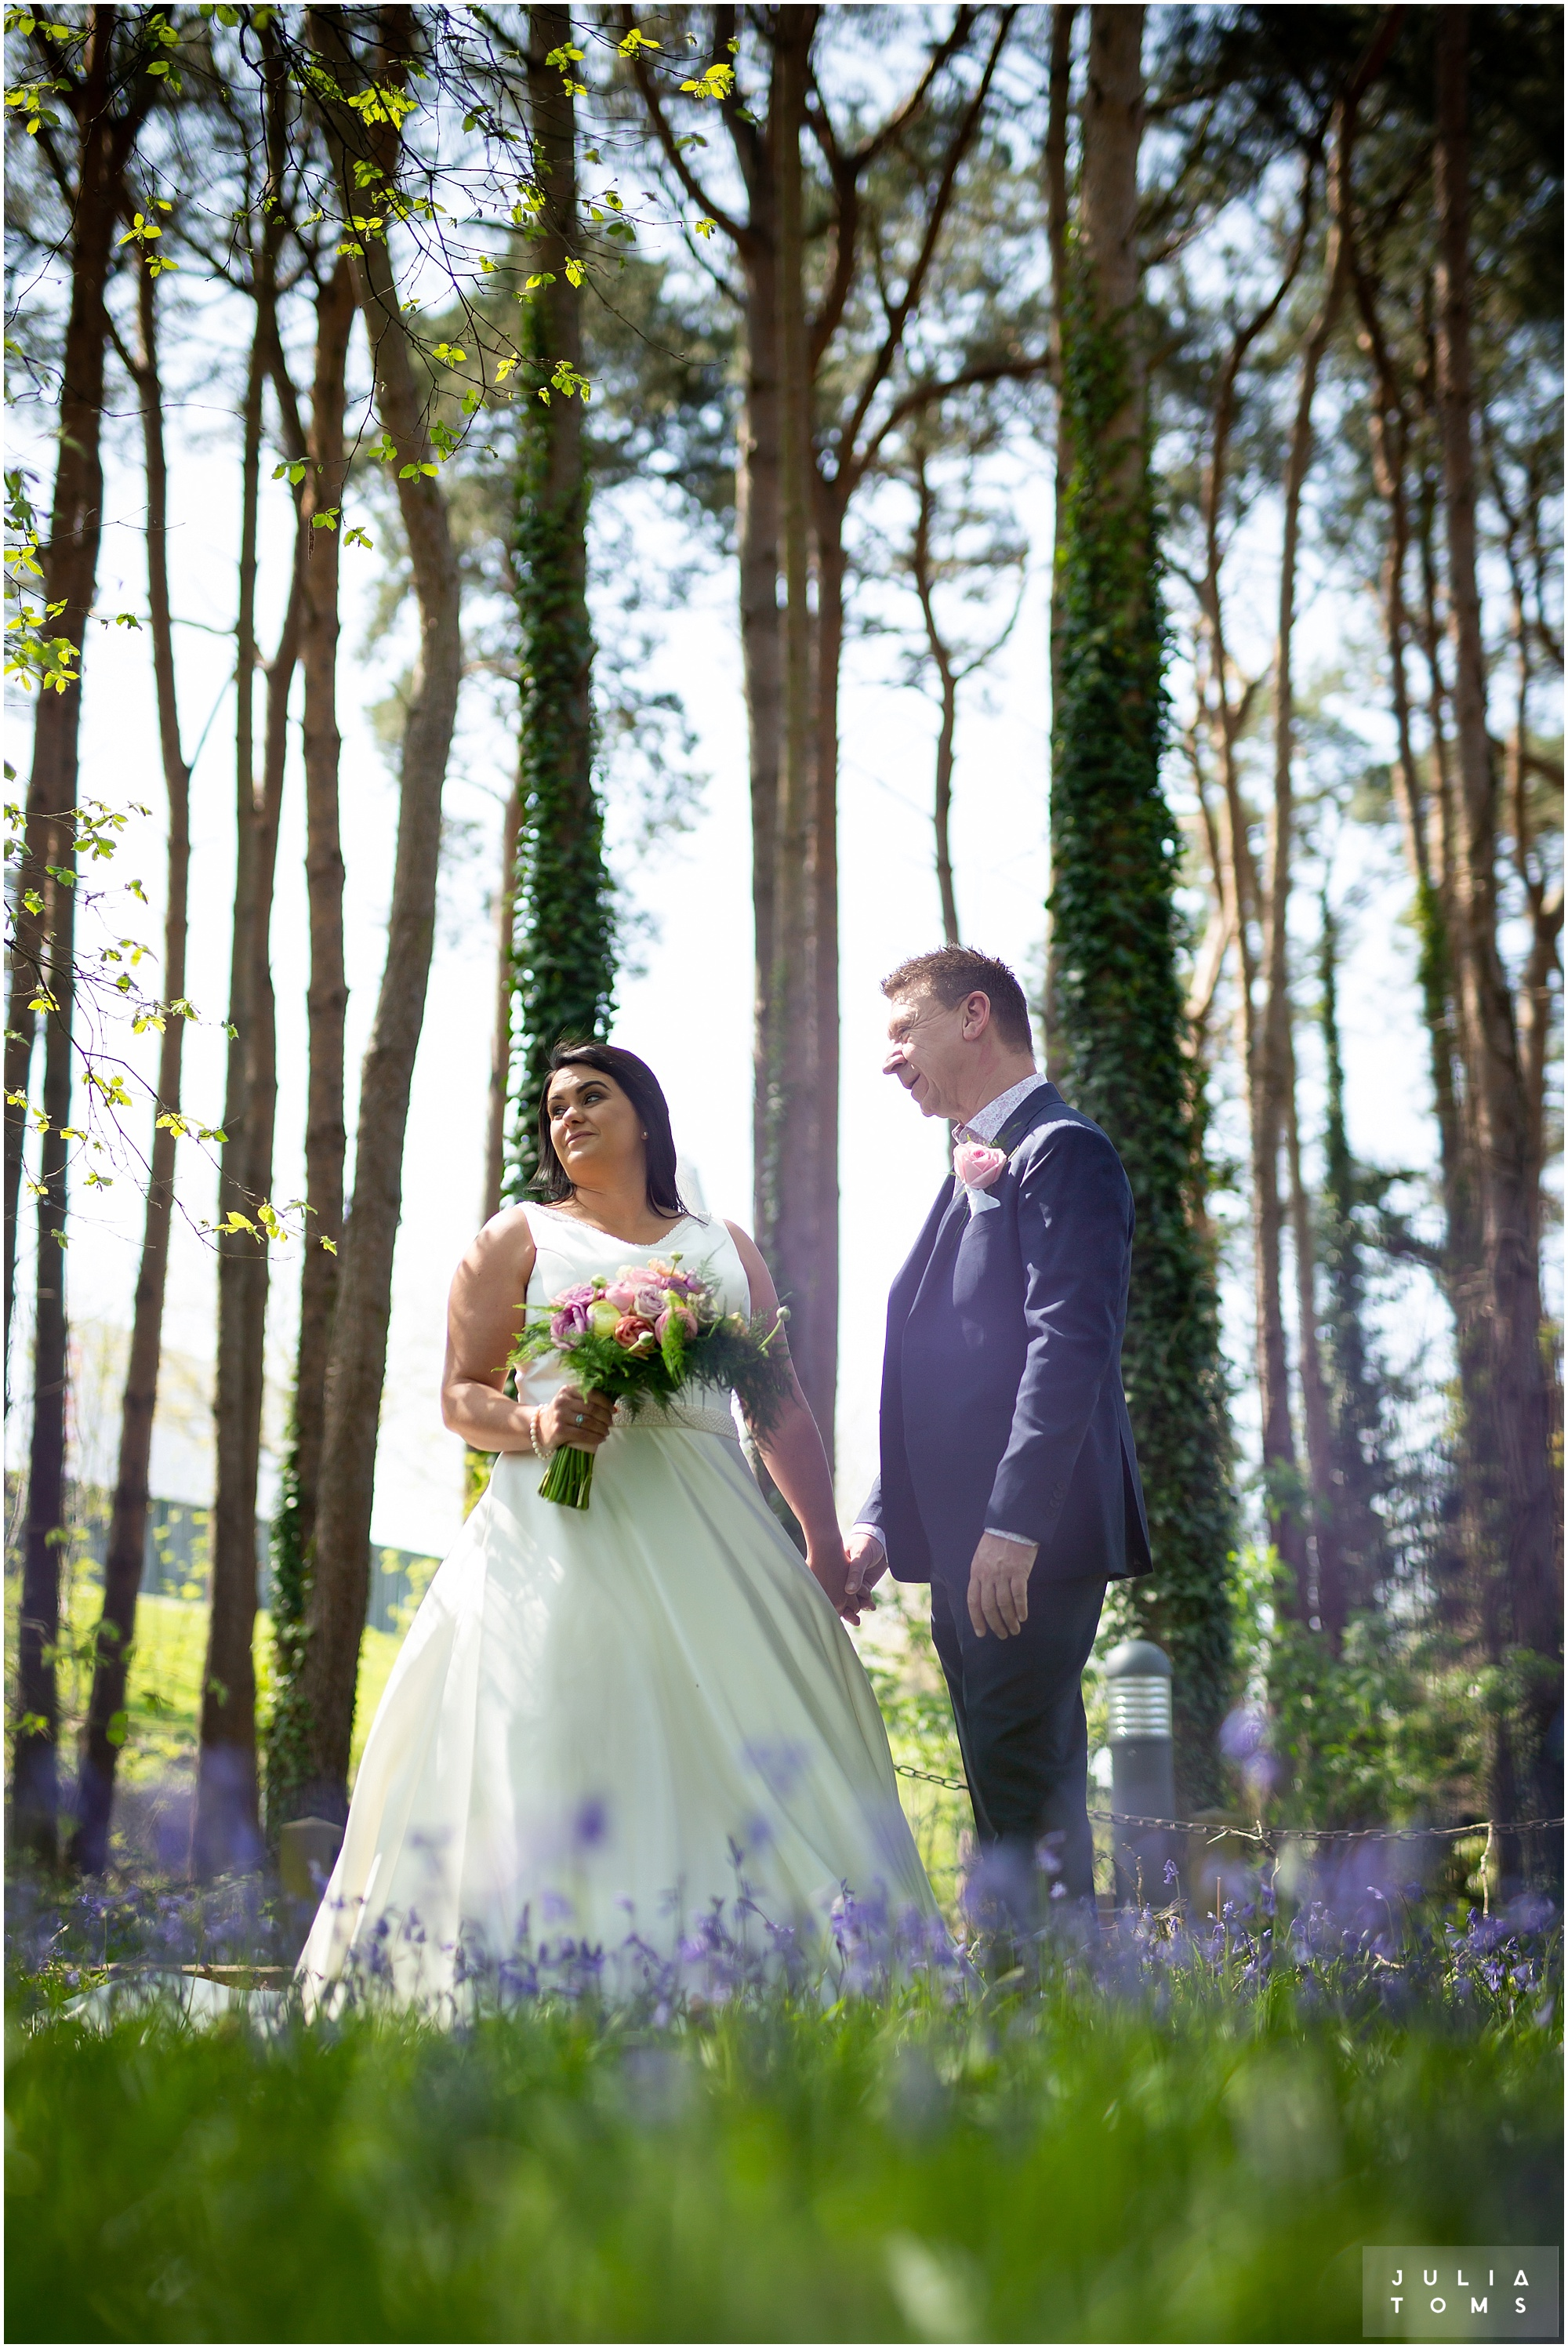 hampshire_wedding_photographer_juliatoms_007.jpg